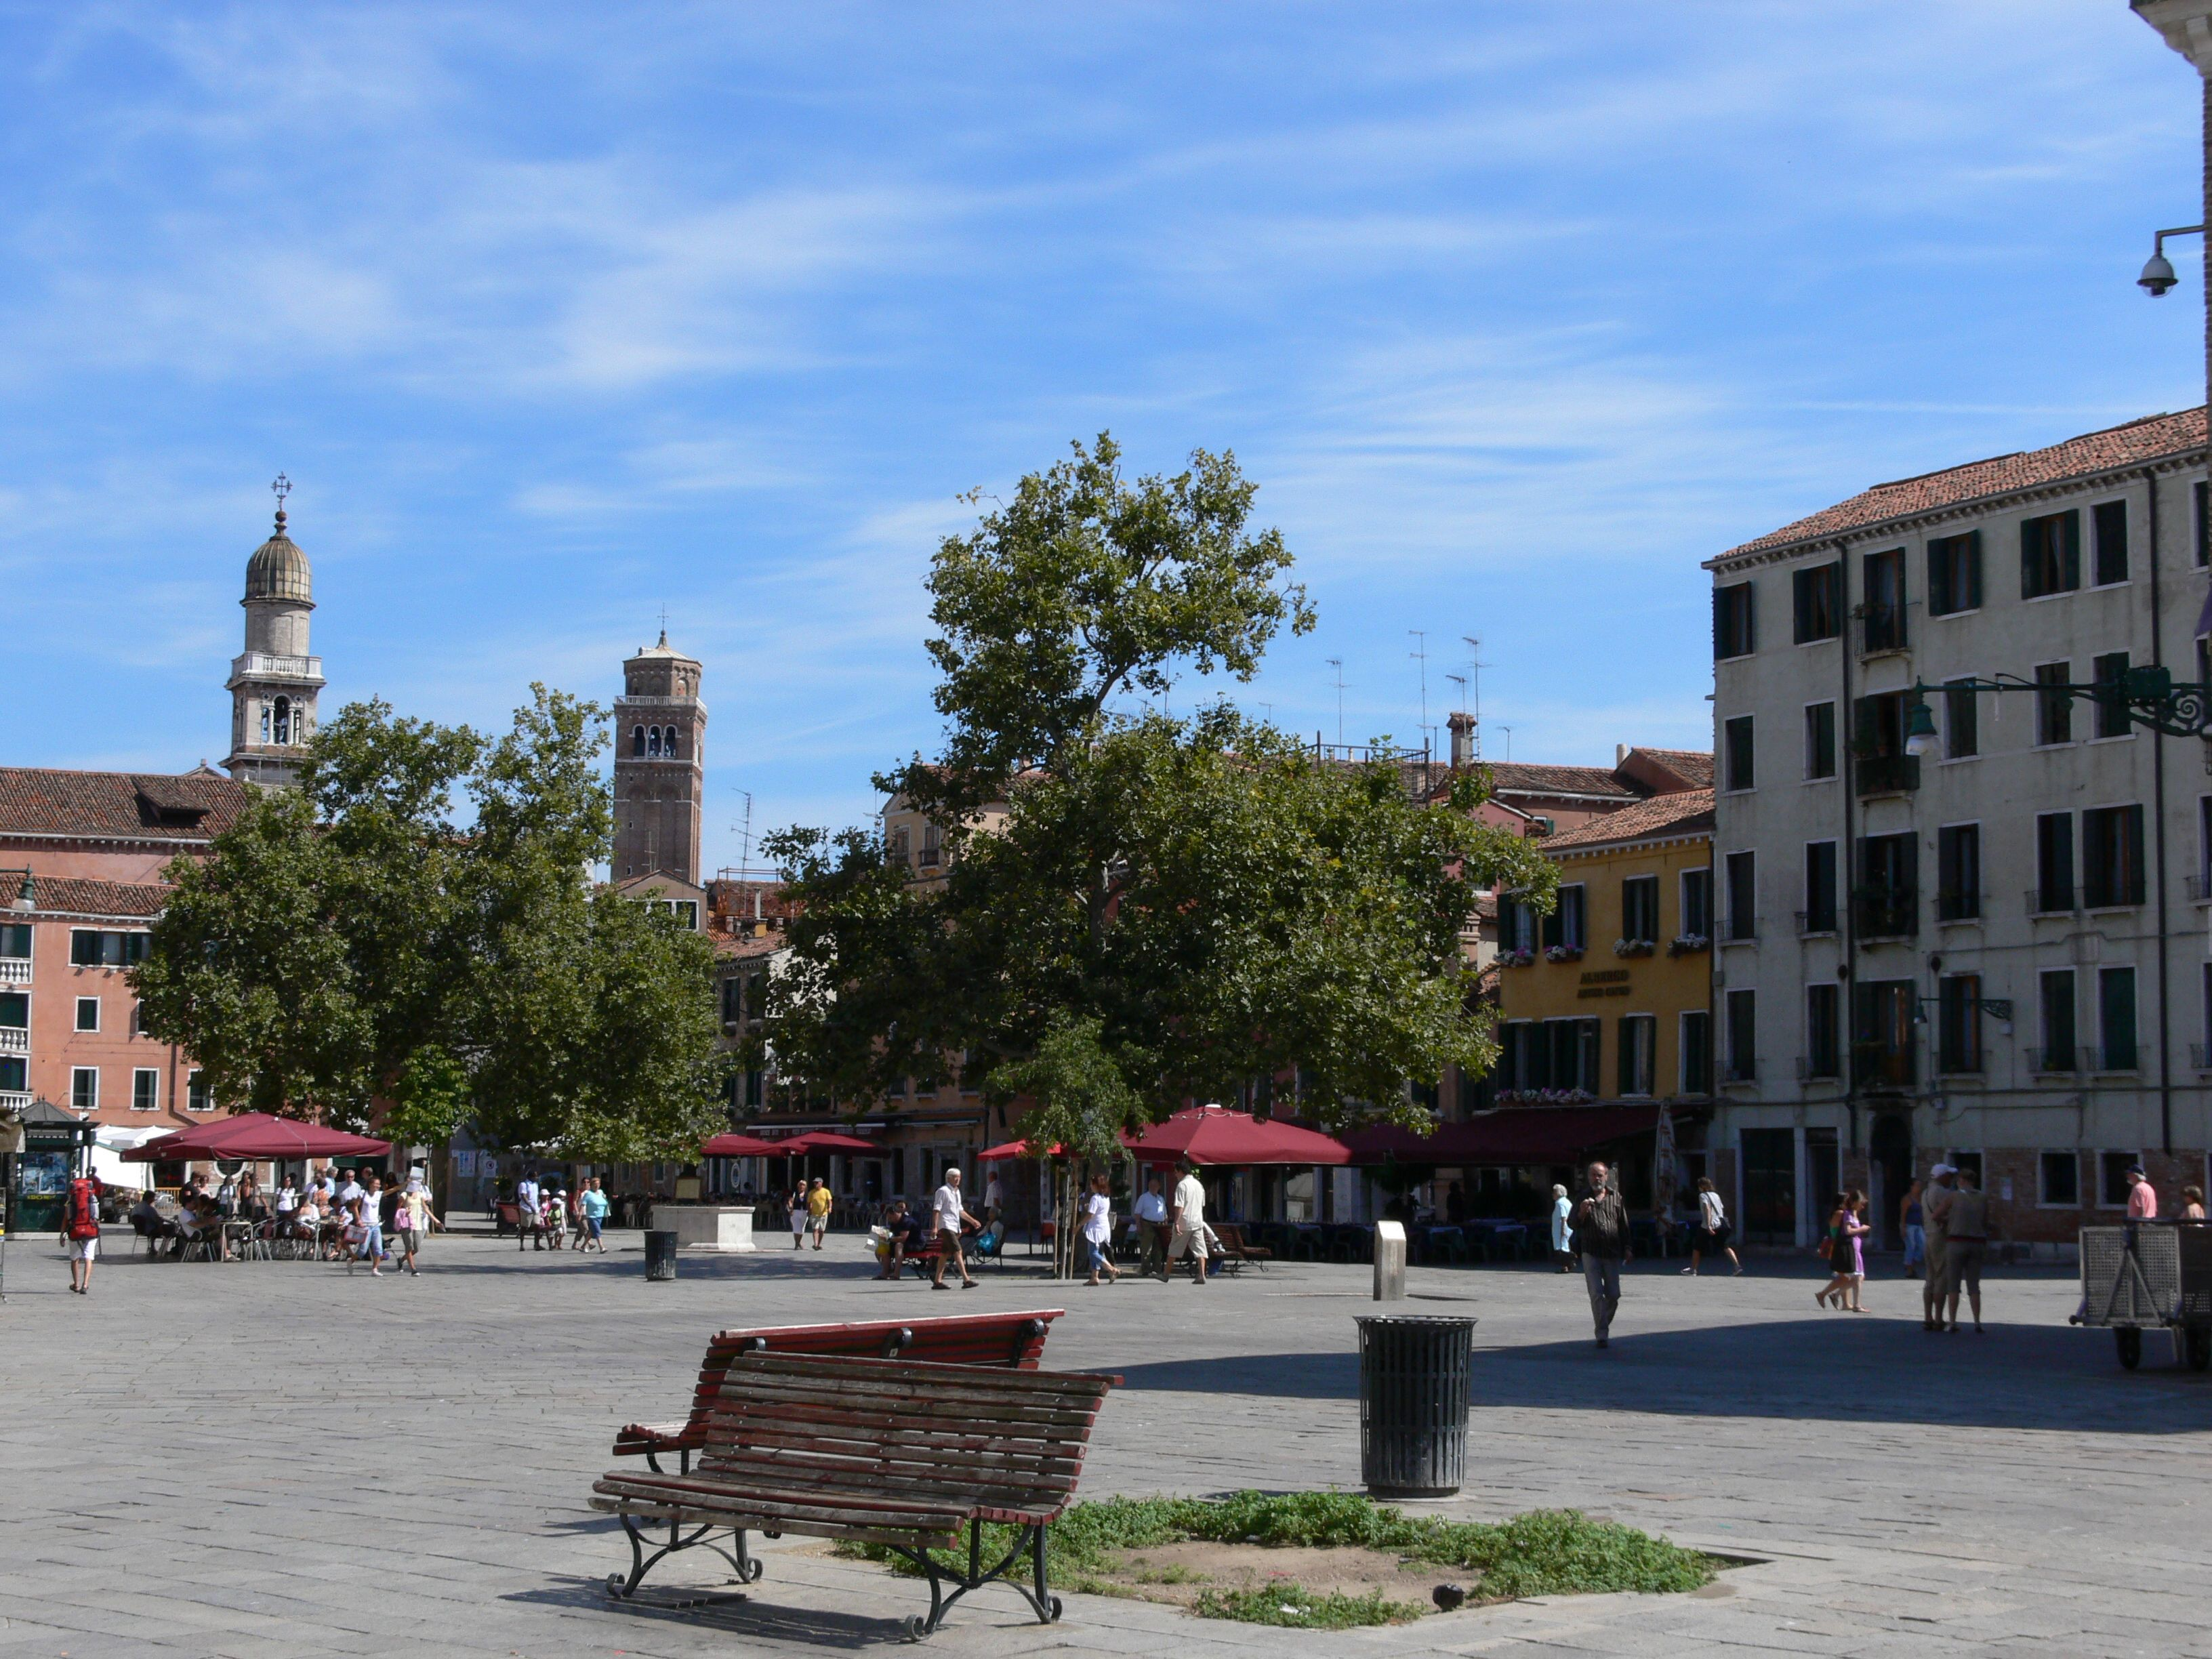 Campo Santa Margherita Venice The Most Popular Place For Young People In Venice